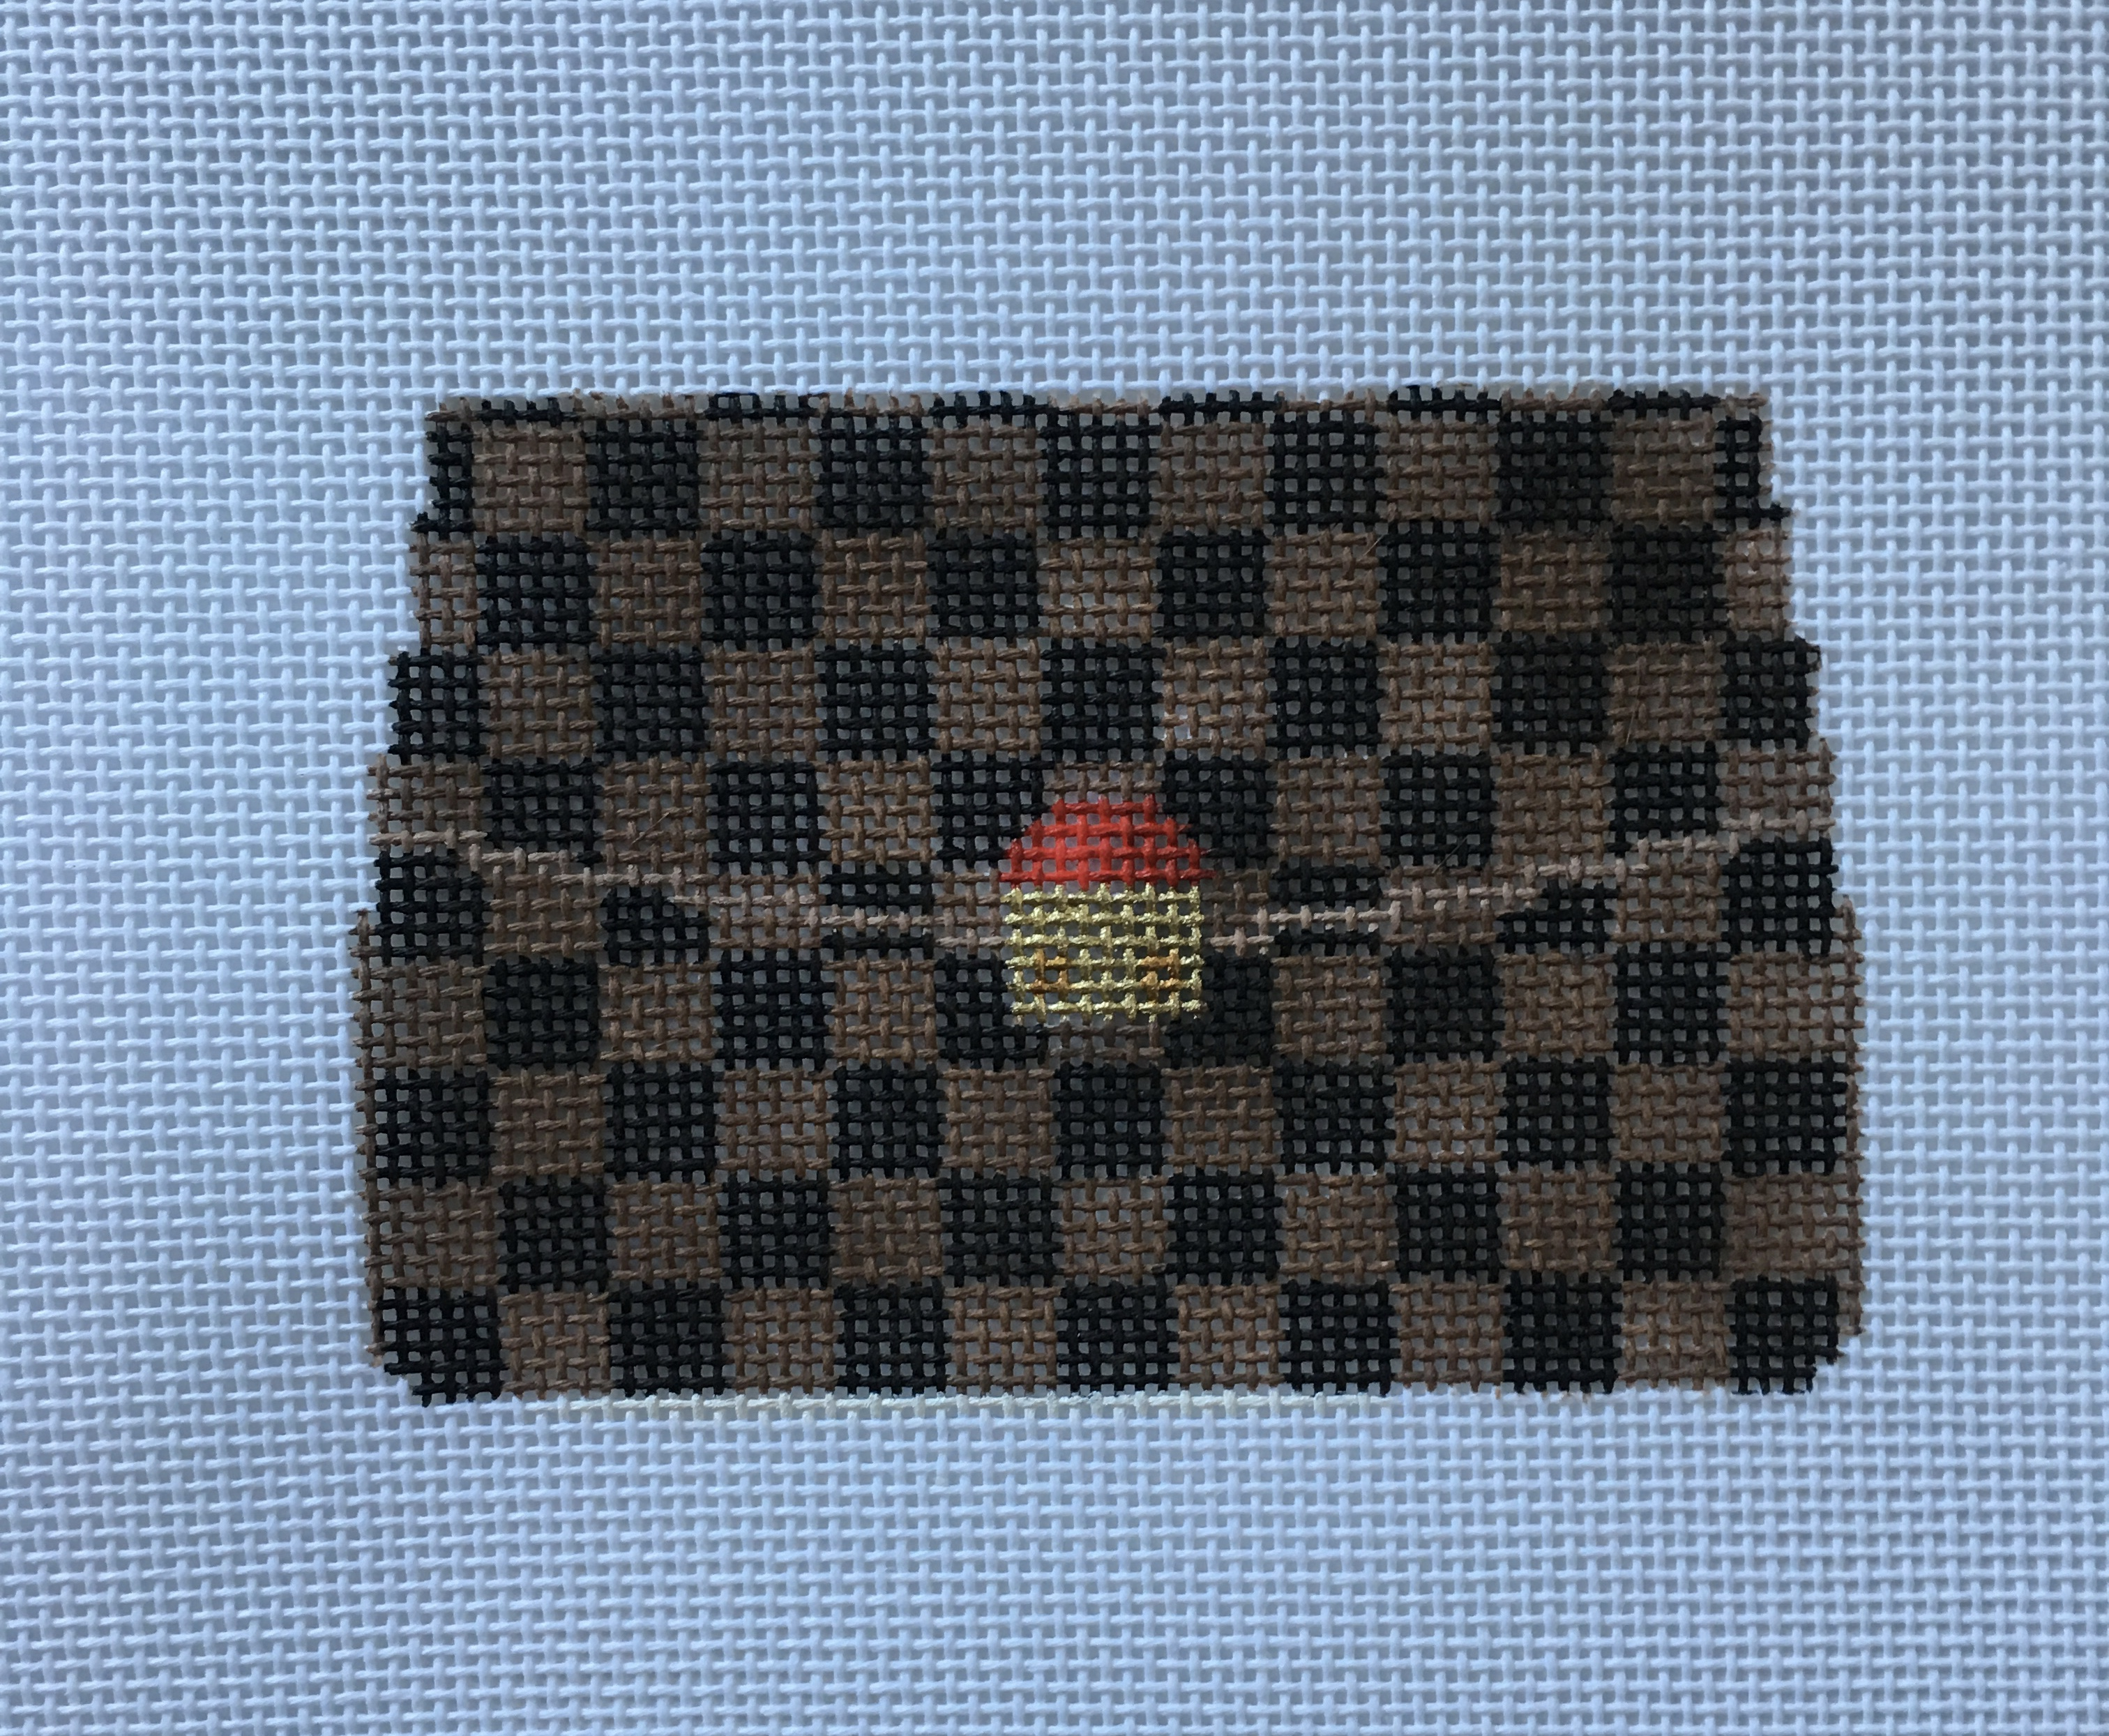 Mini Purse Ornament - LV inspired